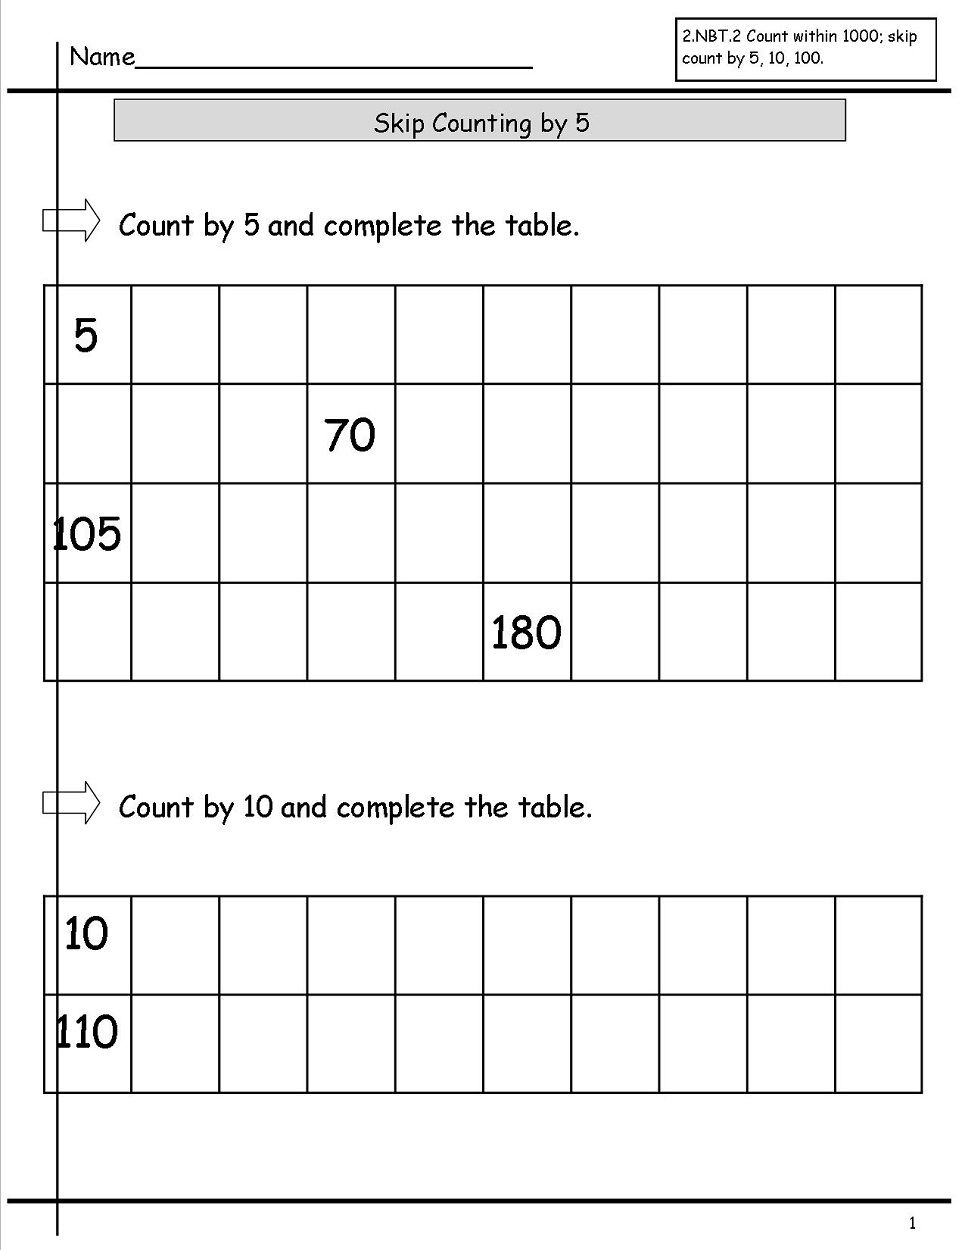 Skip Count By 5 Worksheet Counting Worksheets Skip Counting Worksheets Special Education Math [ 1250 x 965 Pixel ]